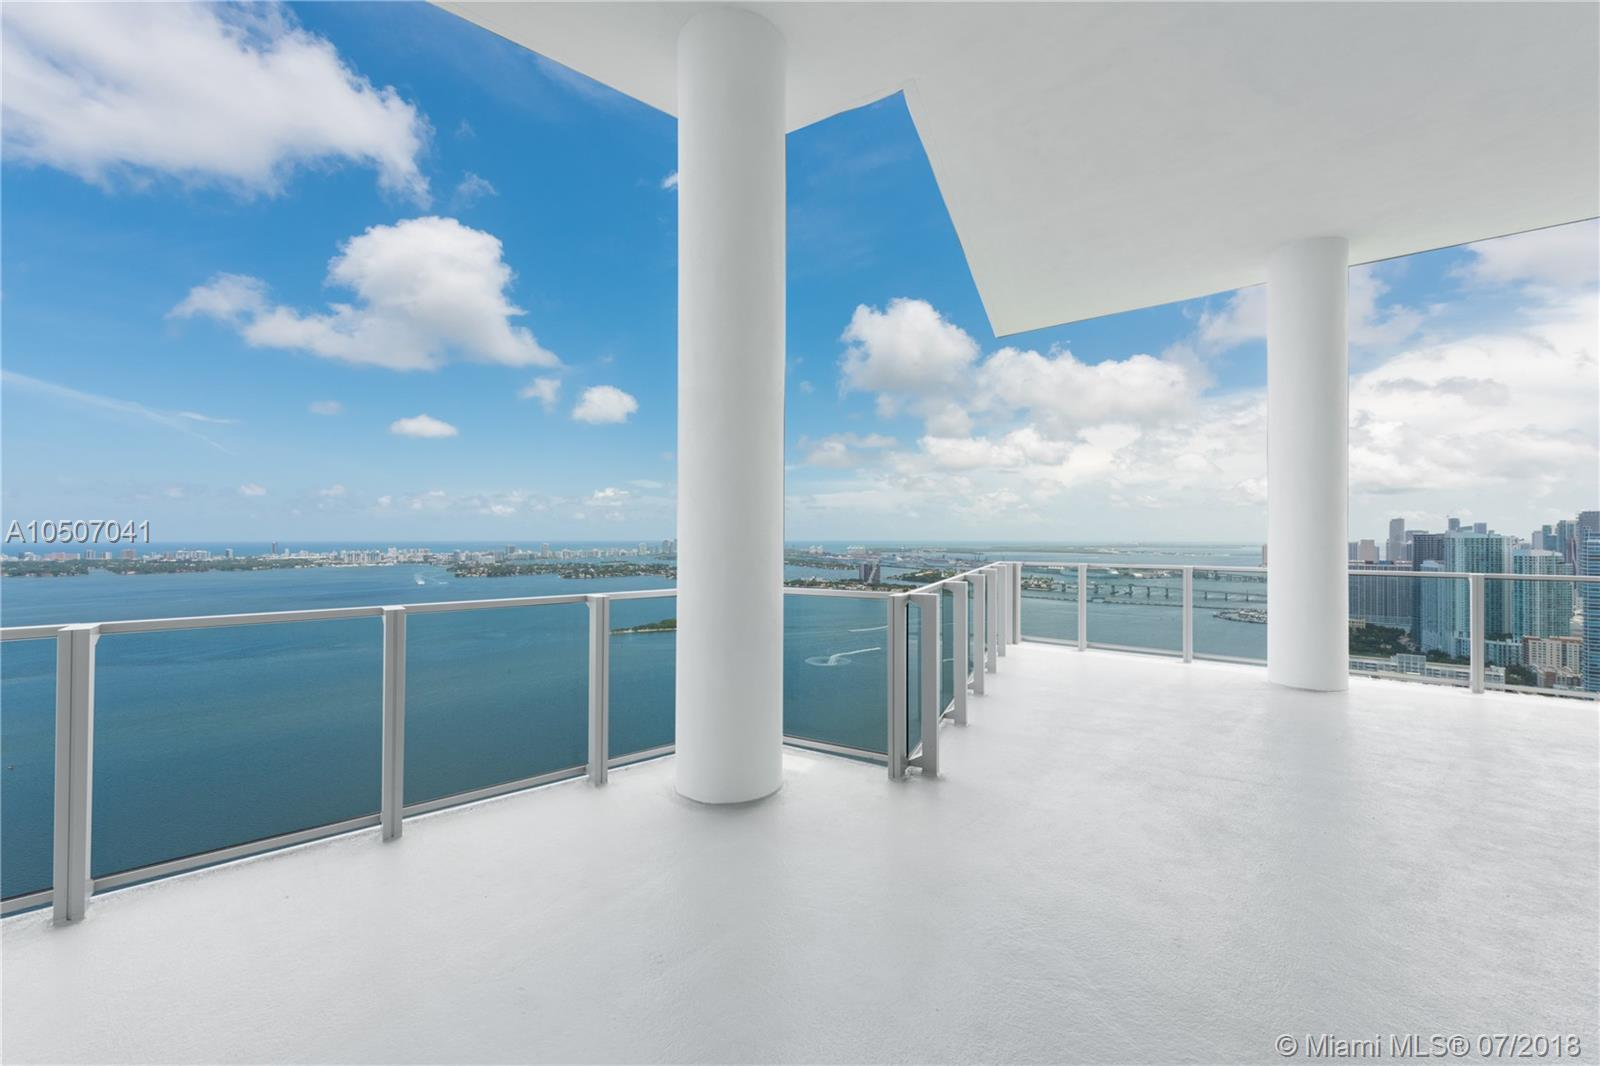 2900 NE 7 Ave #5102 For Sale A10507041, FL